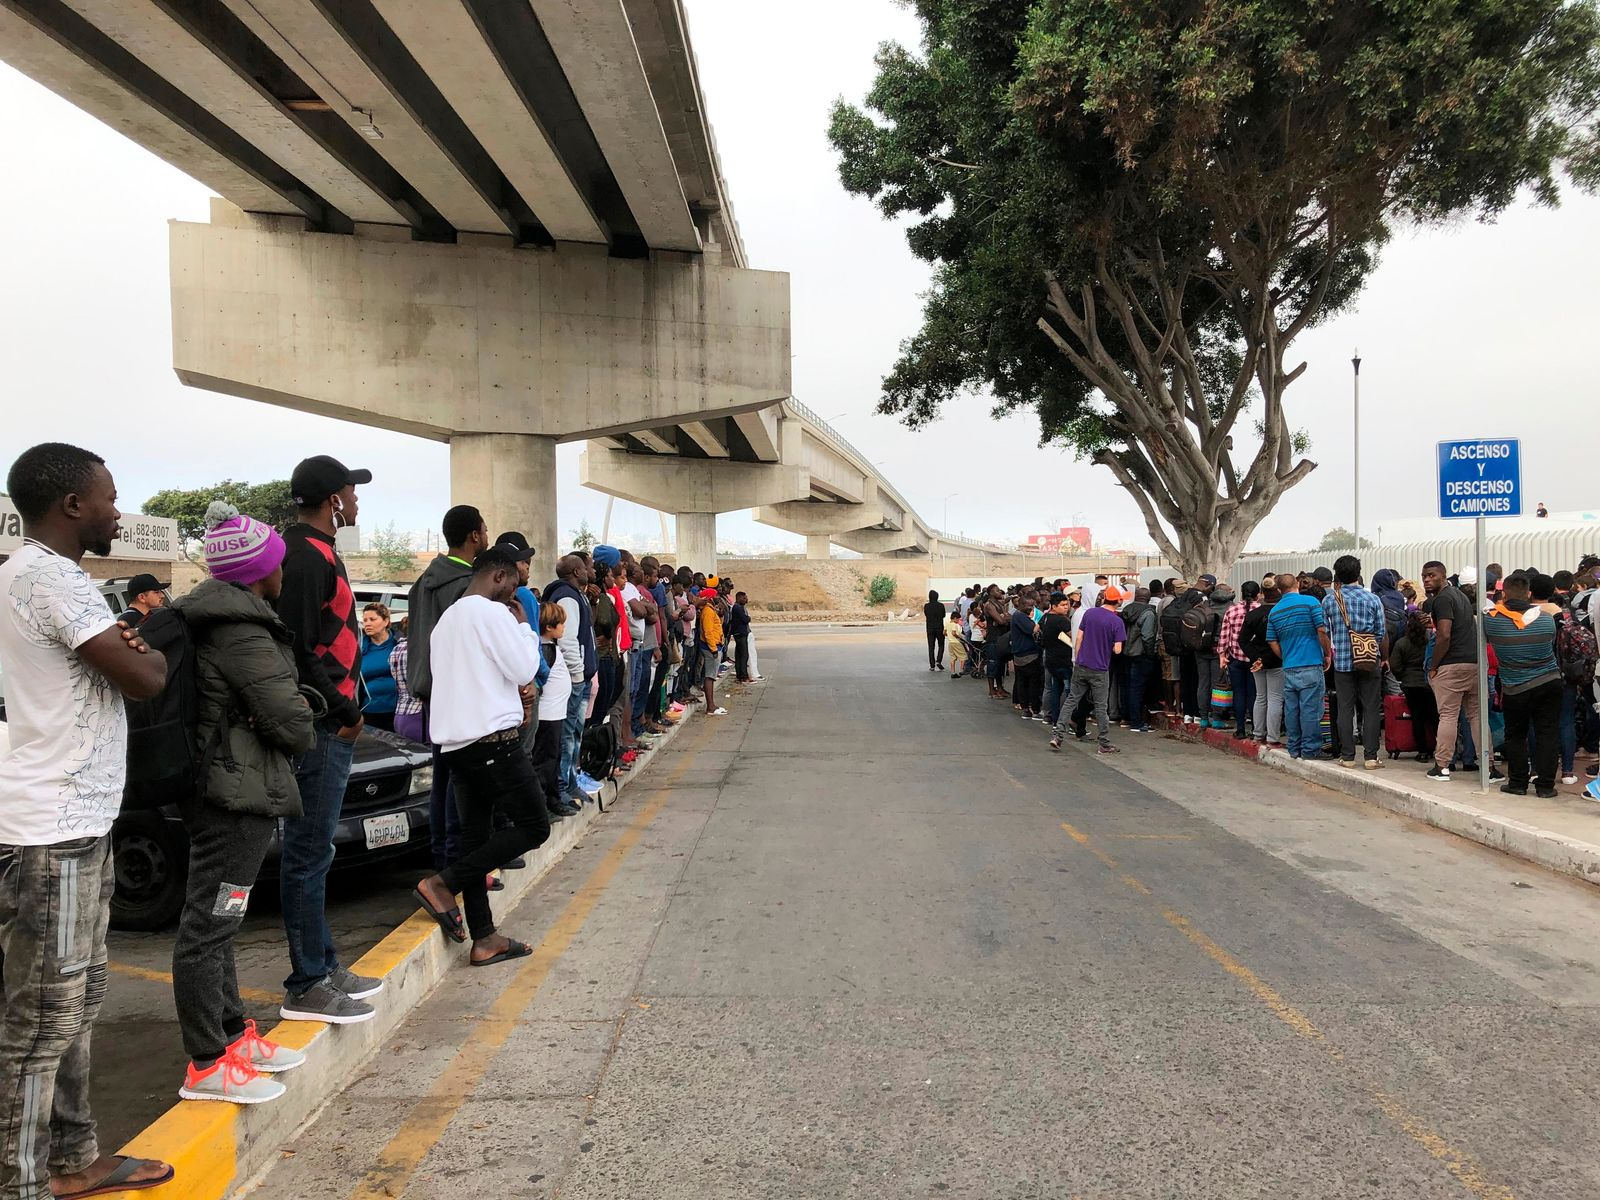 In this July 26, 2019 photo, a group of migrants in Tijuana, Mexico, listen to numbers being called for people to claim asylum in the U.S. The long waits are starting to test the patience of immigrants and border towns. (AP Photo/Elliot Spagat)